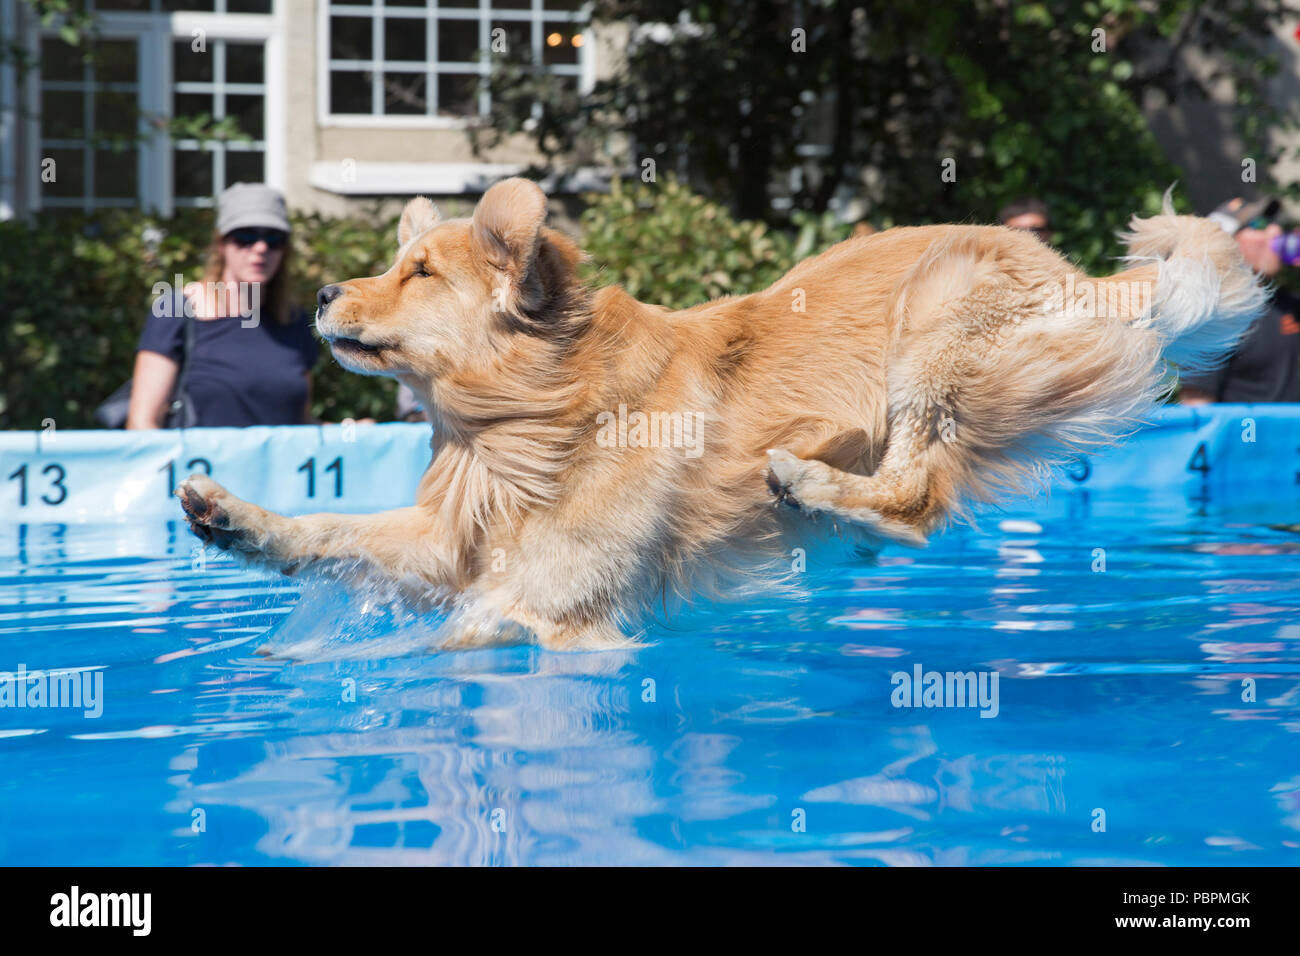 Calgary, Canada. 28th July, 2018.  Dog leaps into pool during a jumping event. Canine watersports are part of Pet-a-Palooza, an outdoor pet festival. Rosanne Tackaberry/Alamy Live News - Stock Image